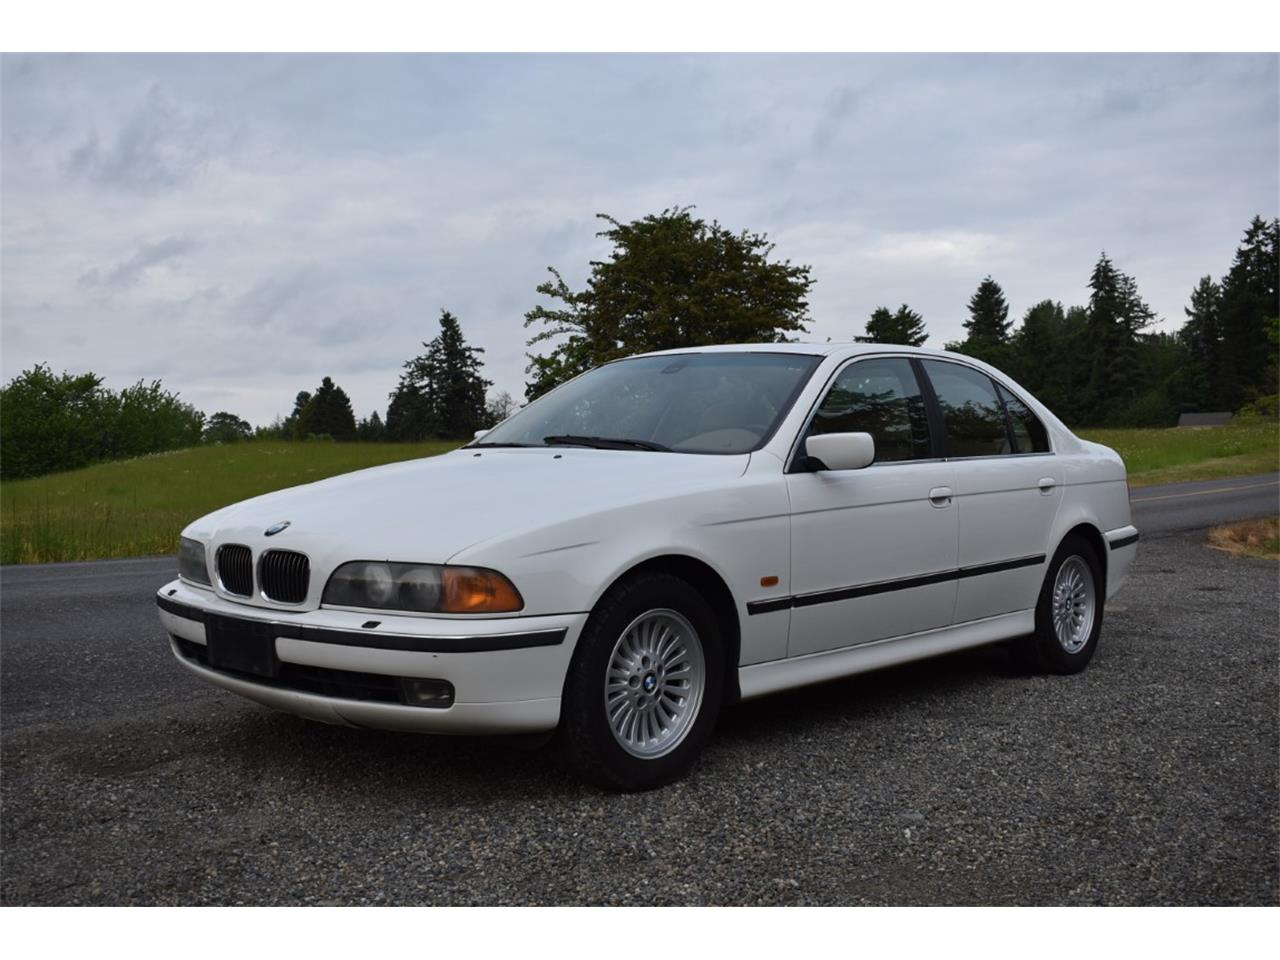 2000 BMW 5 Series (CC-1220691) for sale in Tacoma, Washington